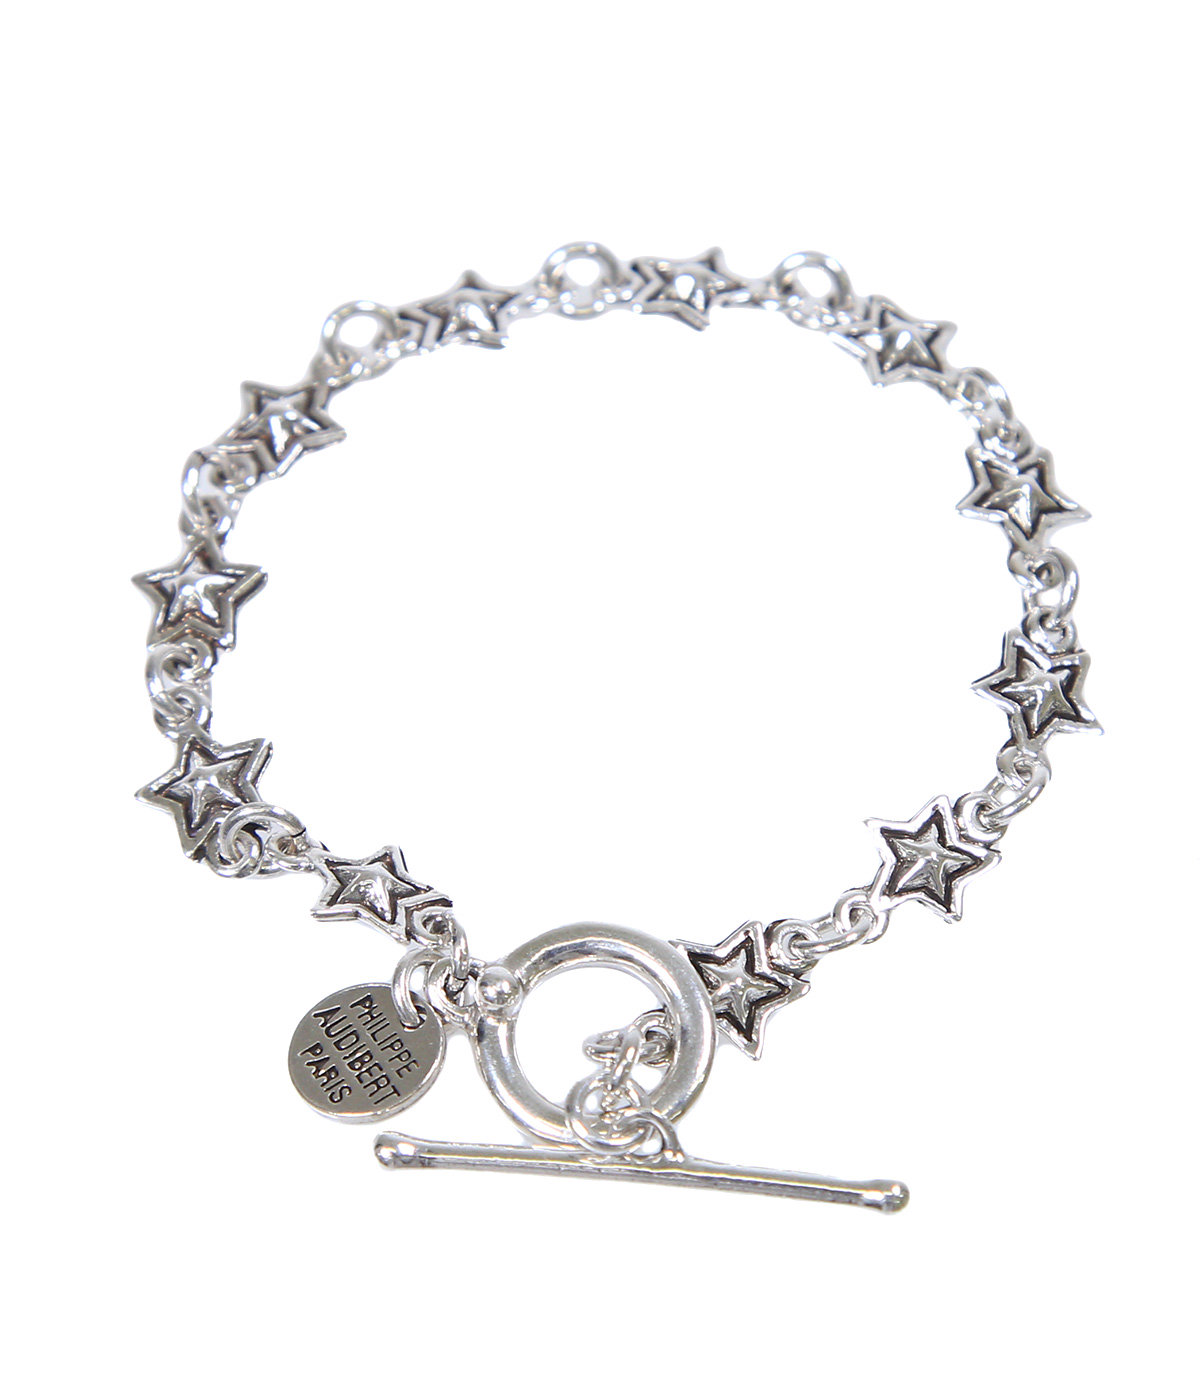 【レディース】April bracelet(silver color)